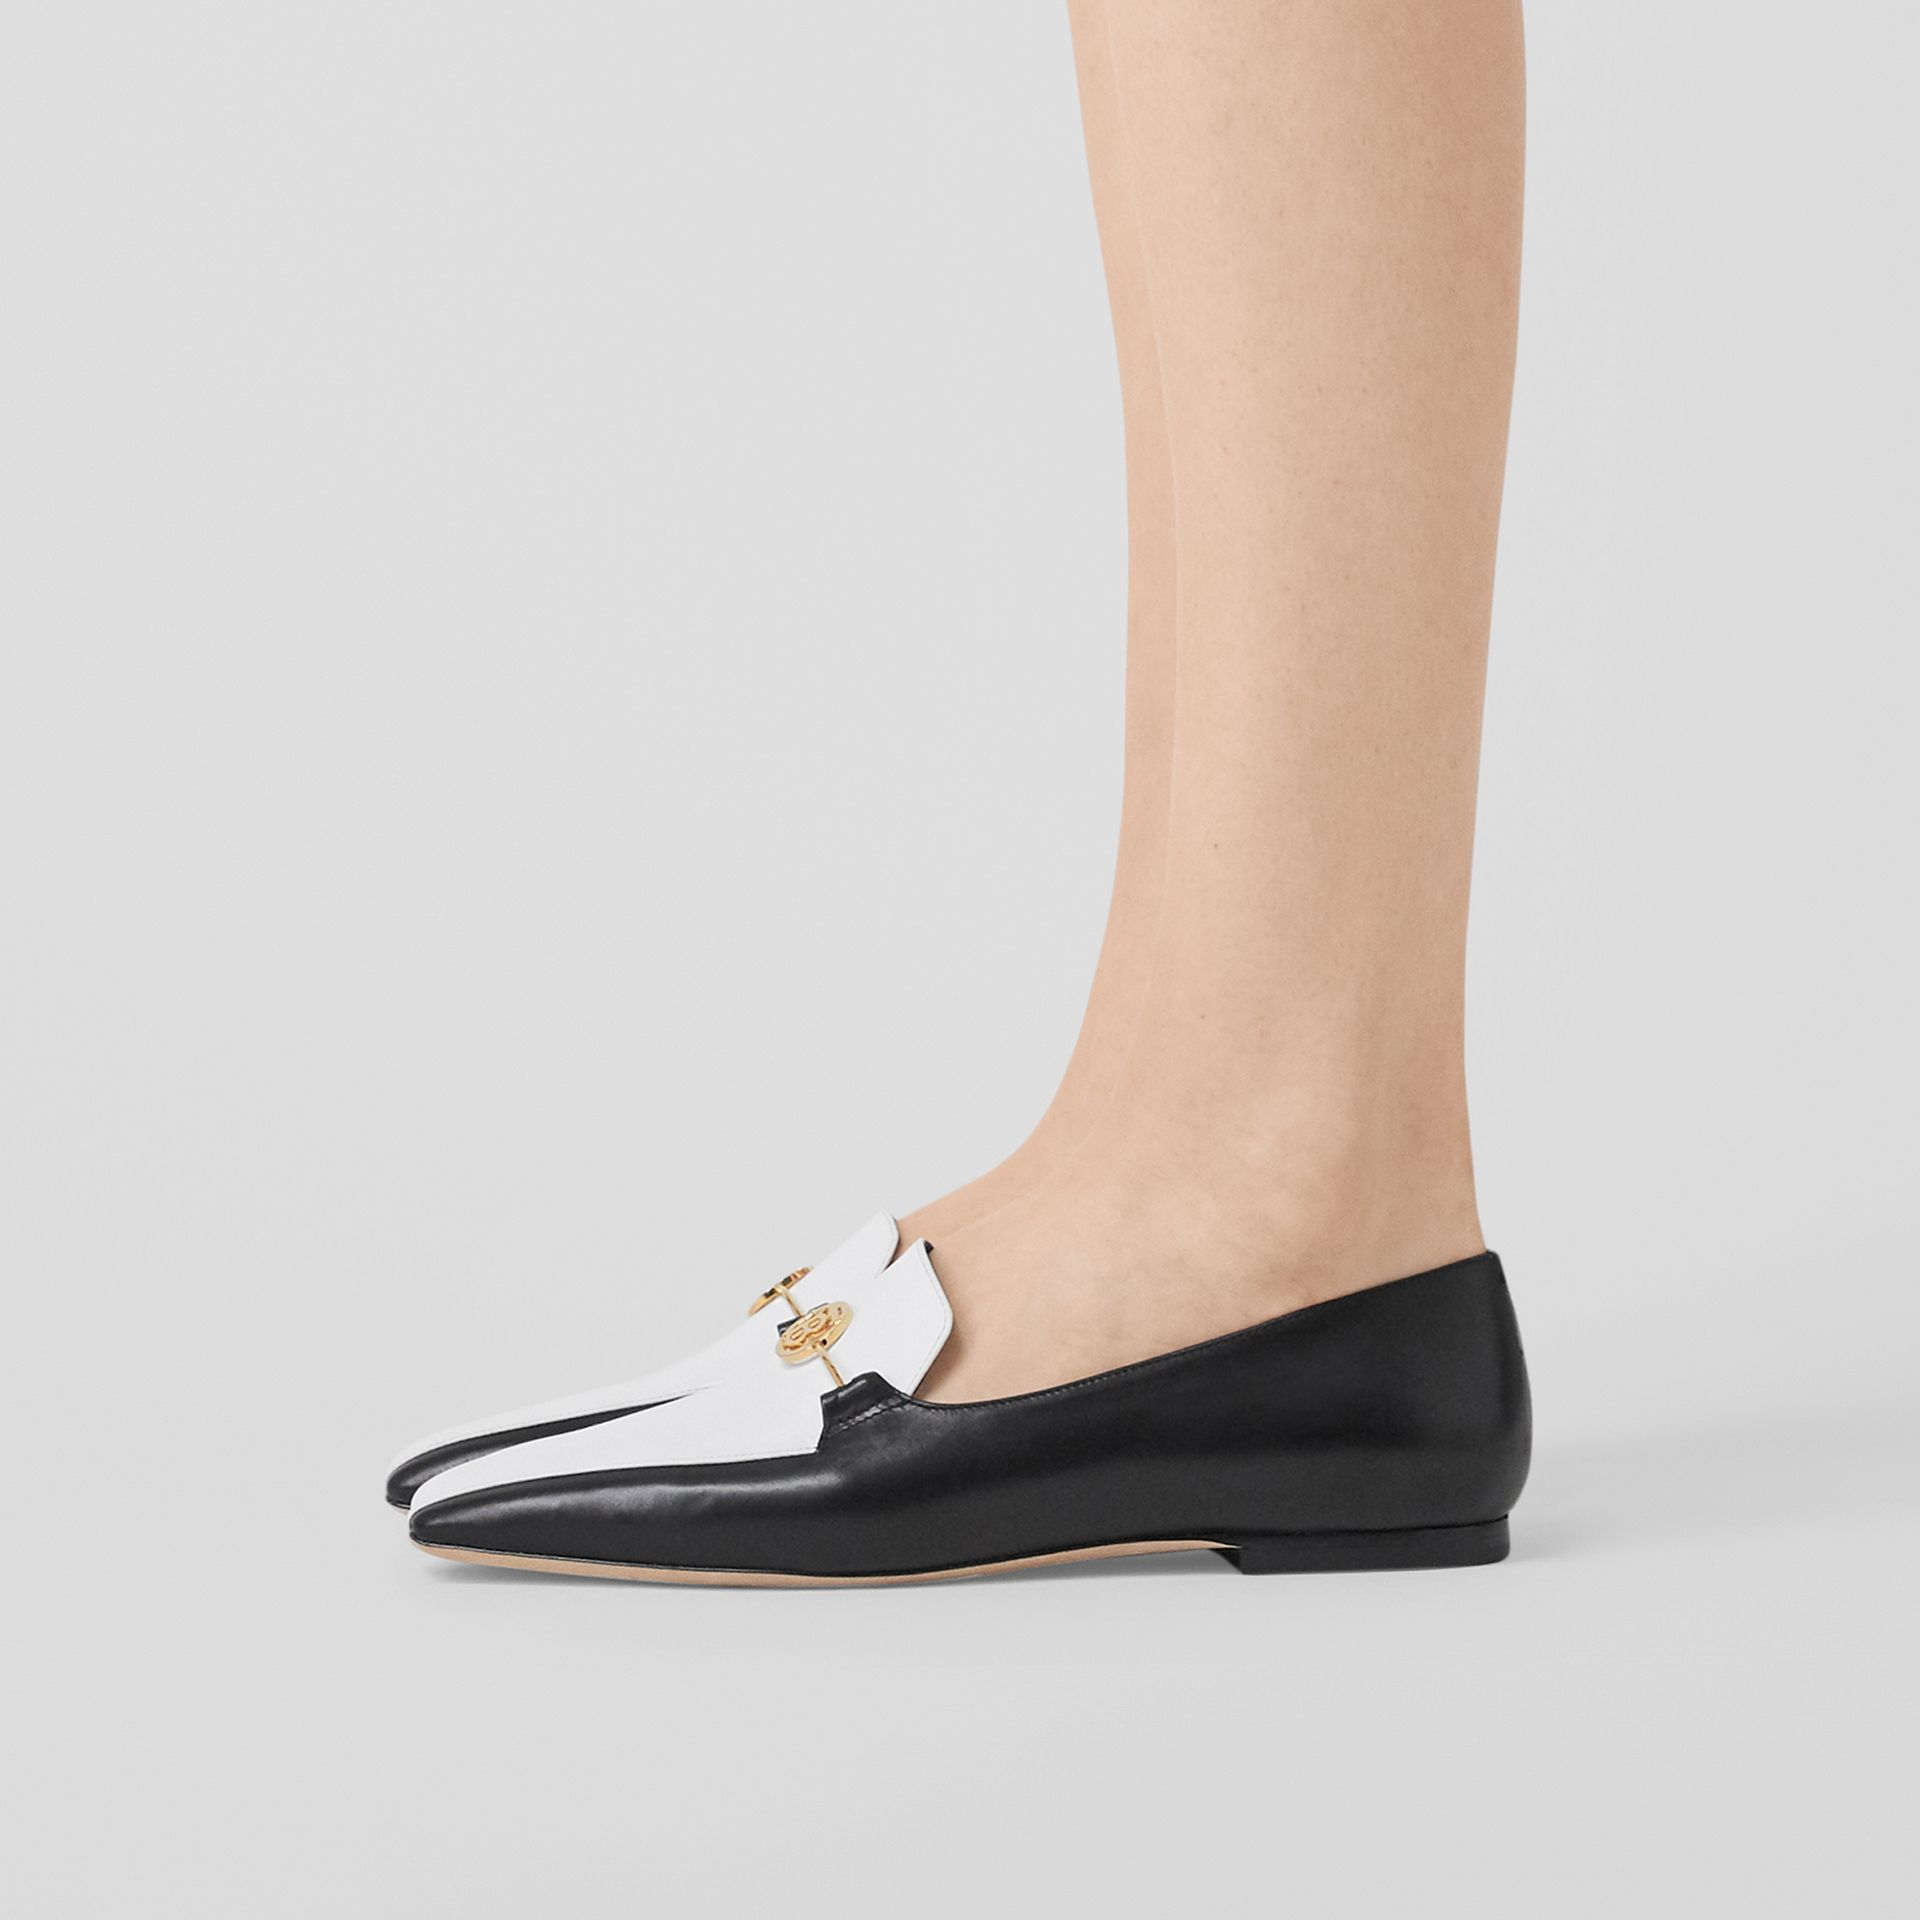 Monogram Motif Two-tone Leather Loafers in Black/white - Women | Burberry - gallery image 2